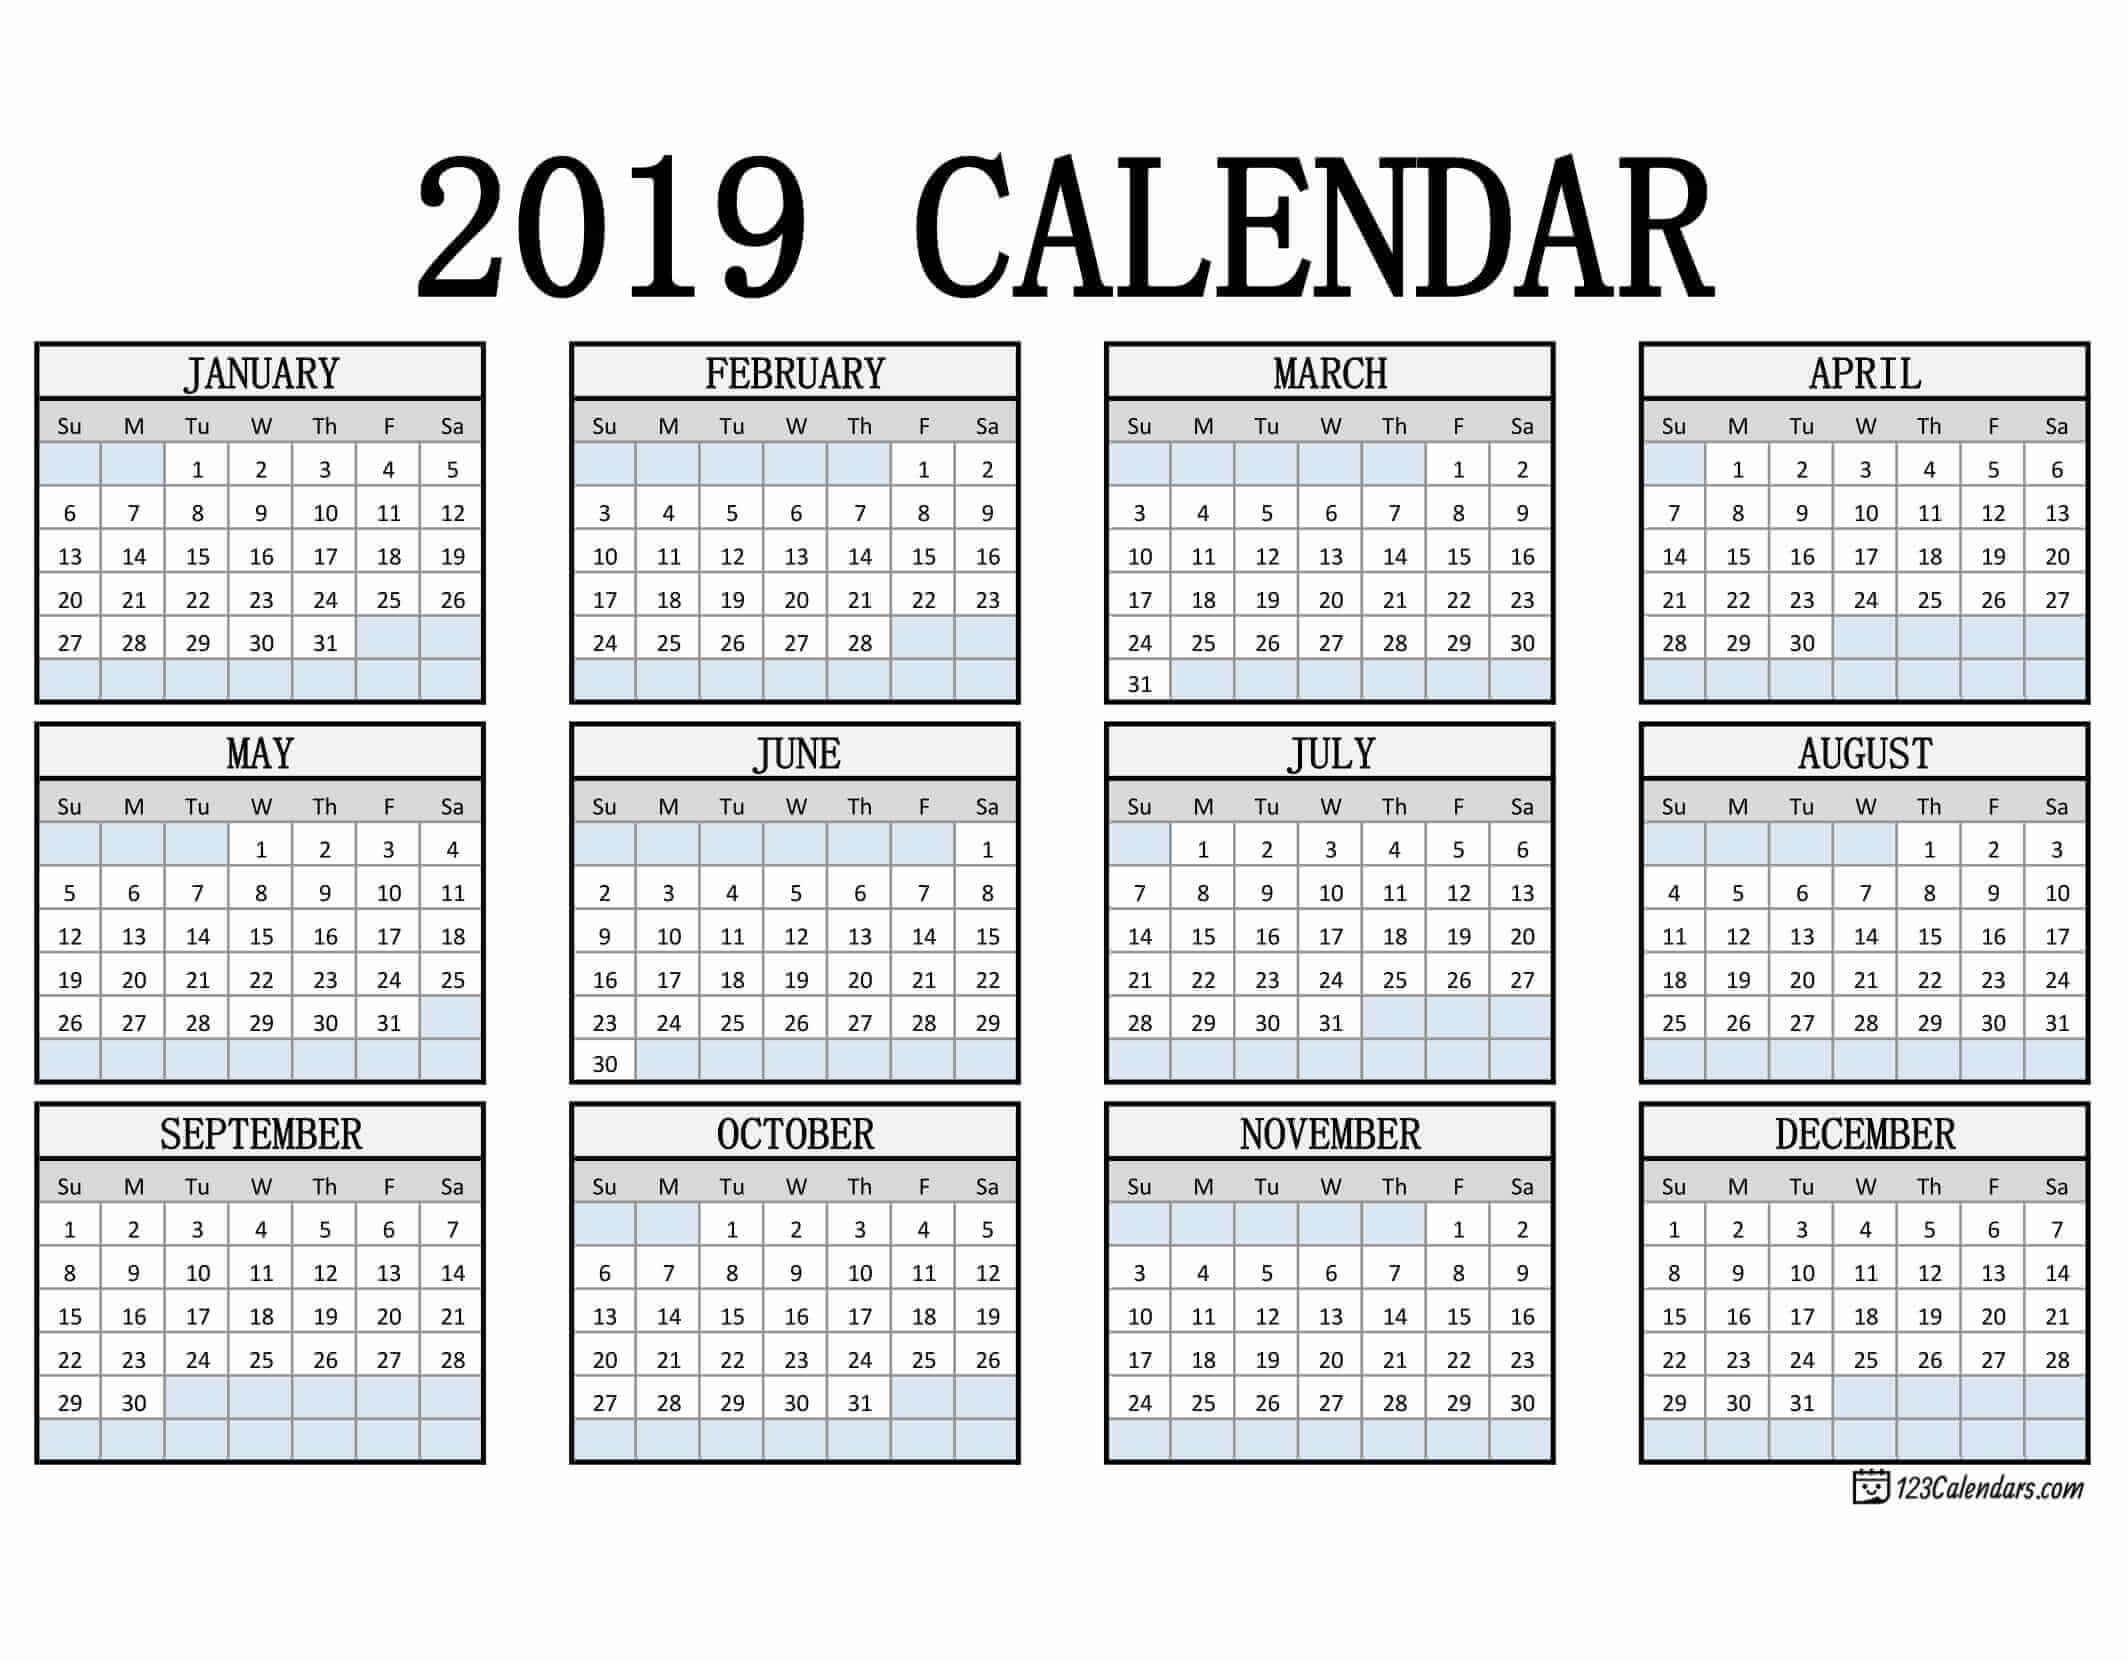 Free Printable 2019 Calendar | 123Calendars pertaining to Free Printable Pocket Size Calendars